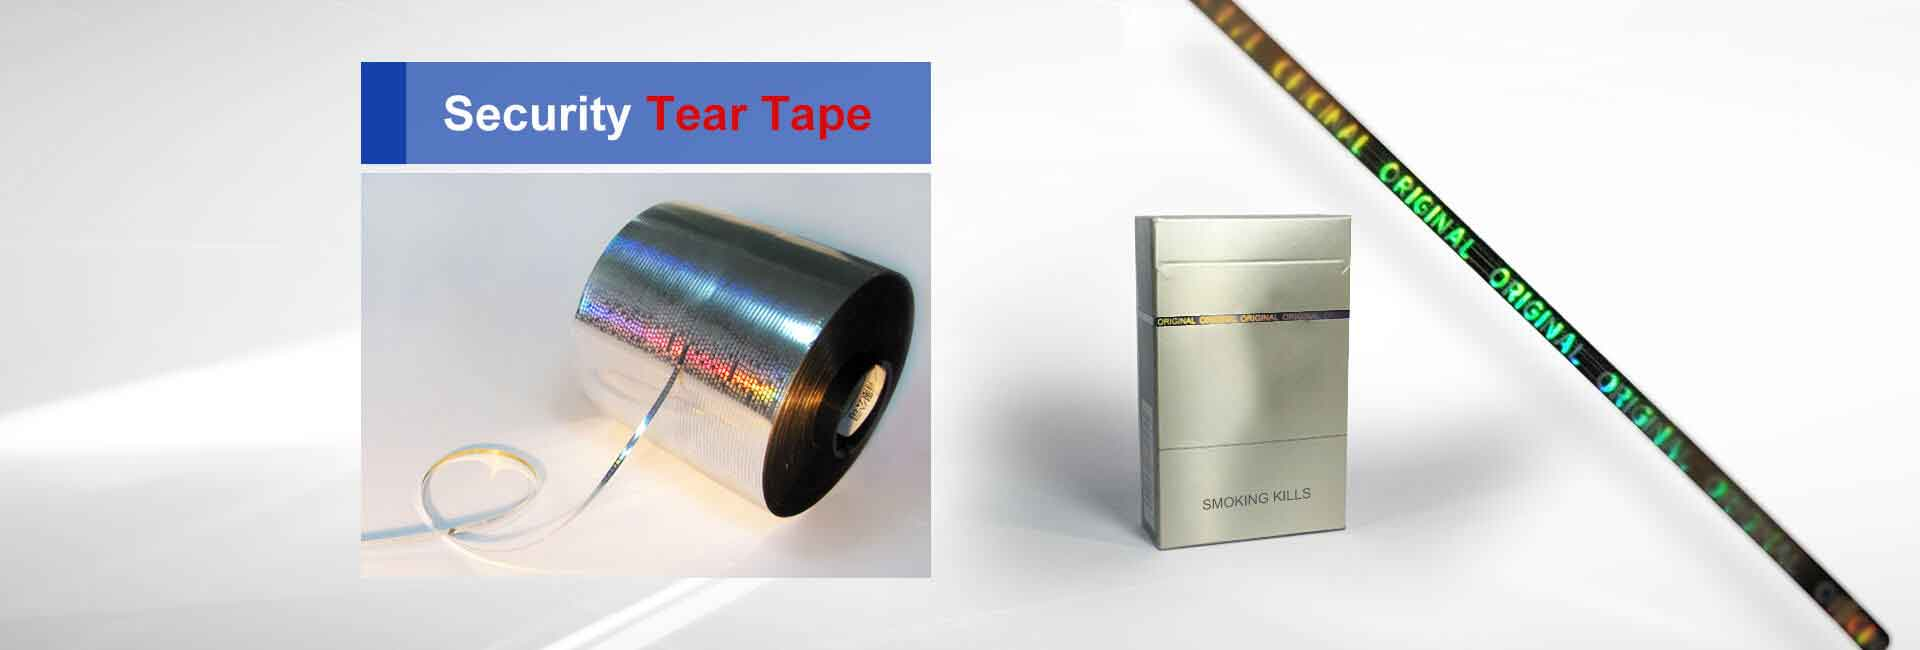 Hologram-Security-Tear-Tape-for-Cigarette-Brand-Package